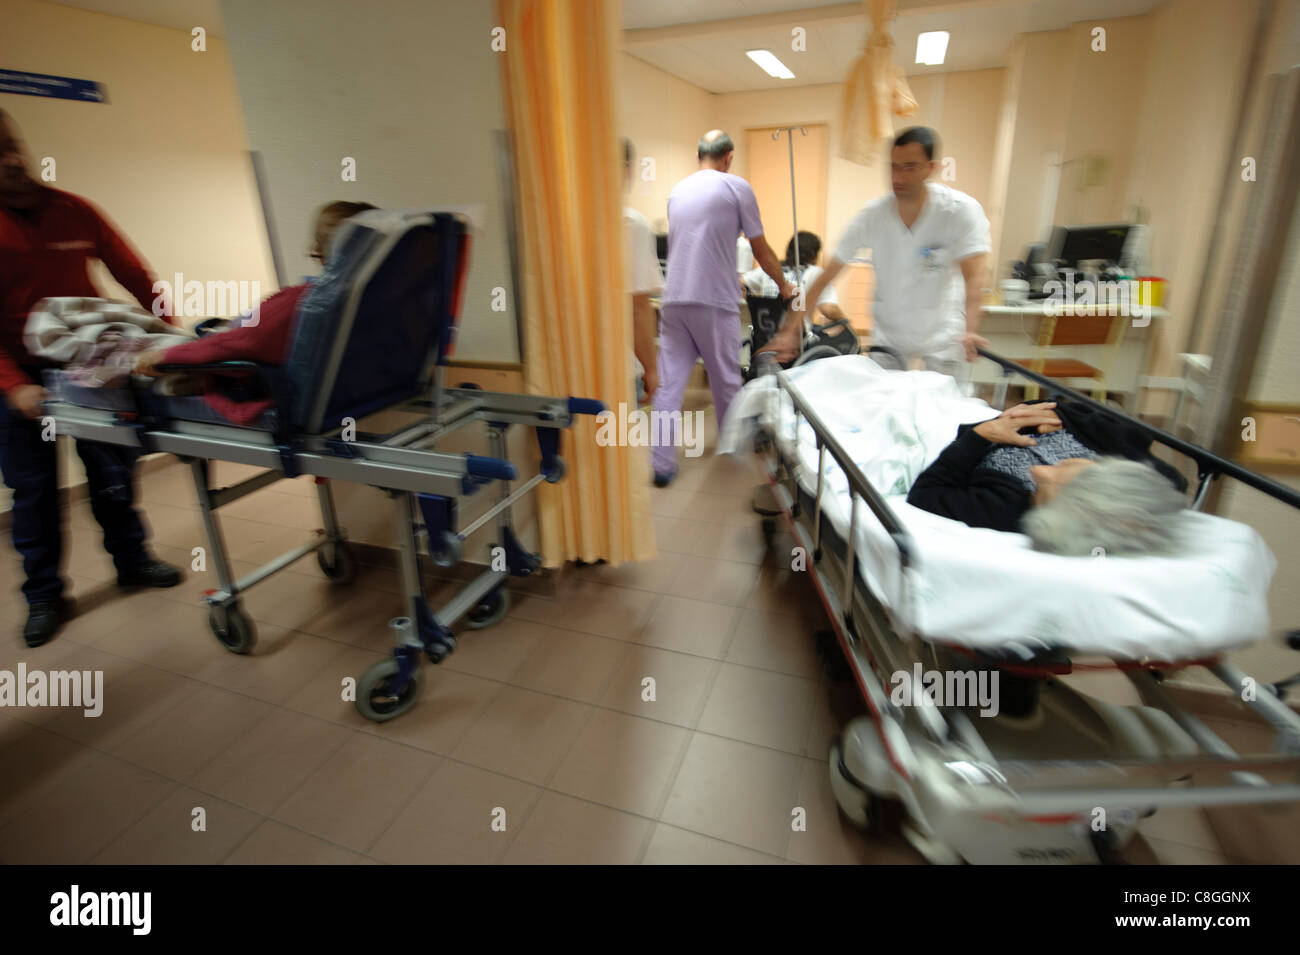 Motion blurred dynamic photo of healthcare professionals moving patients in gurneys in an hospital - Stock Image